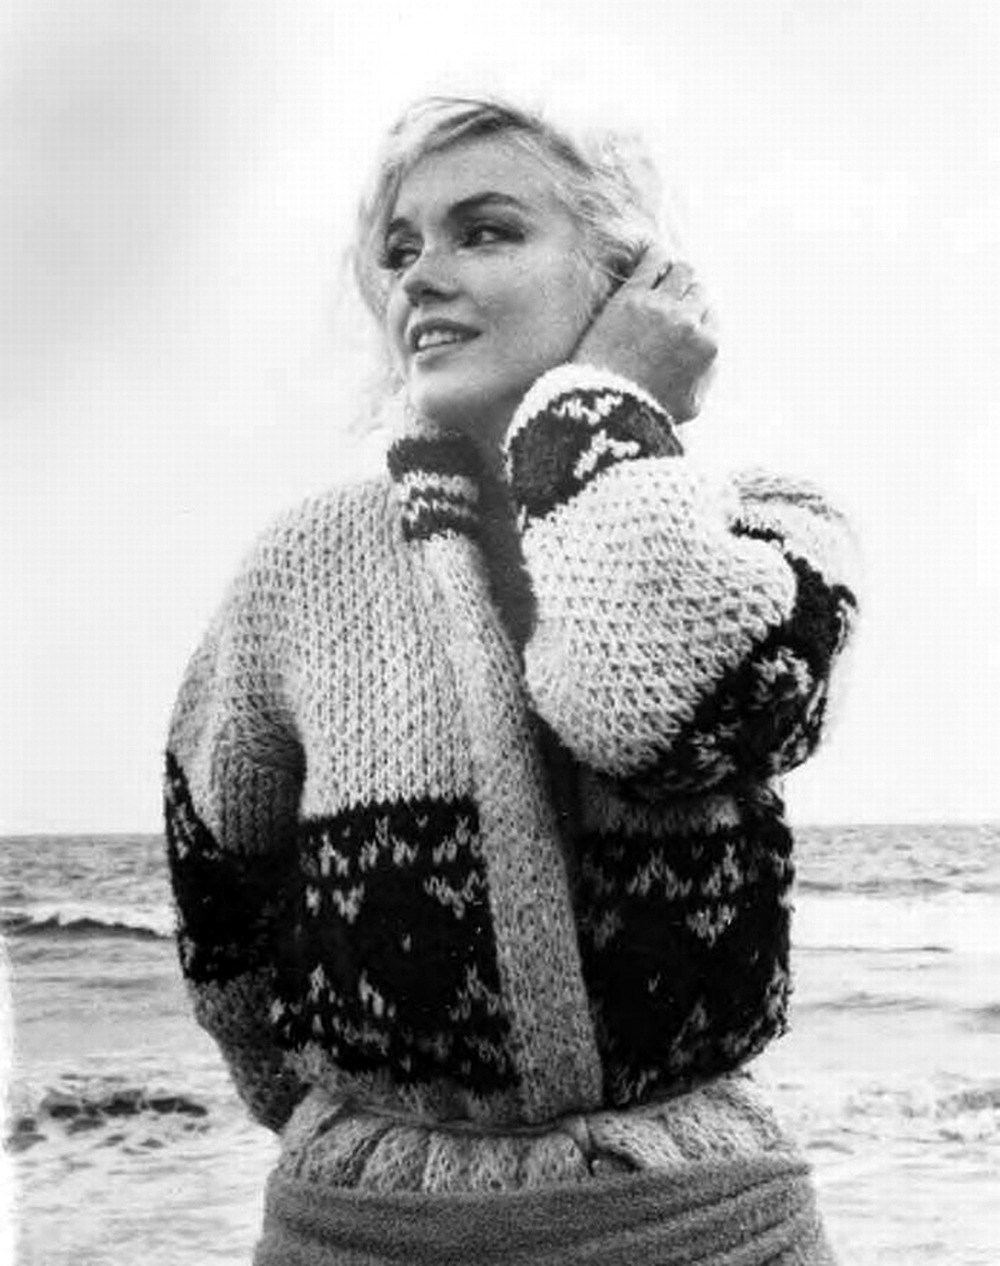 Marilyn Monroe by George Barris, June 30th 1962